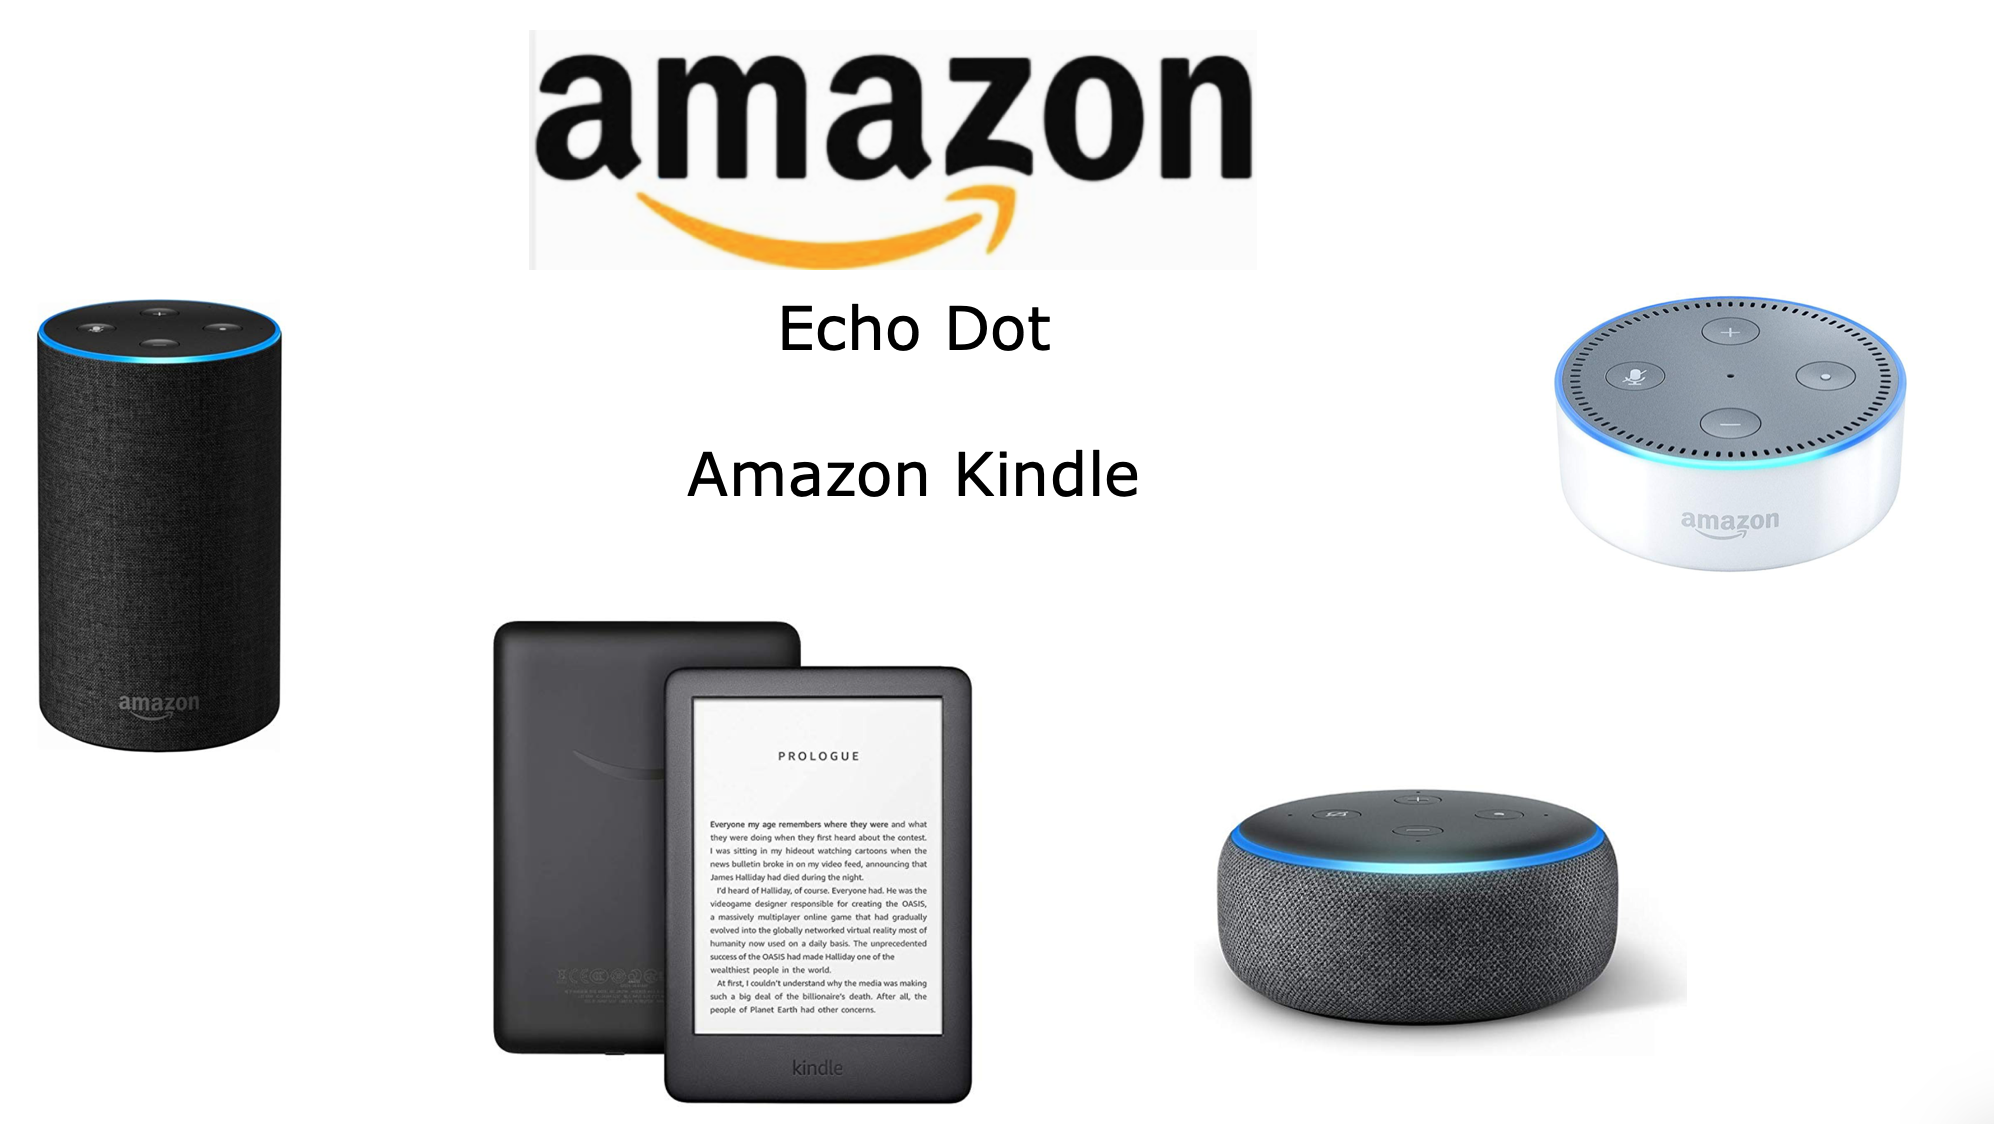 Amazon Kindle, Echo Dot, Amazon Alexa